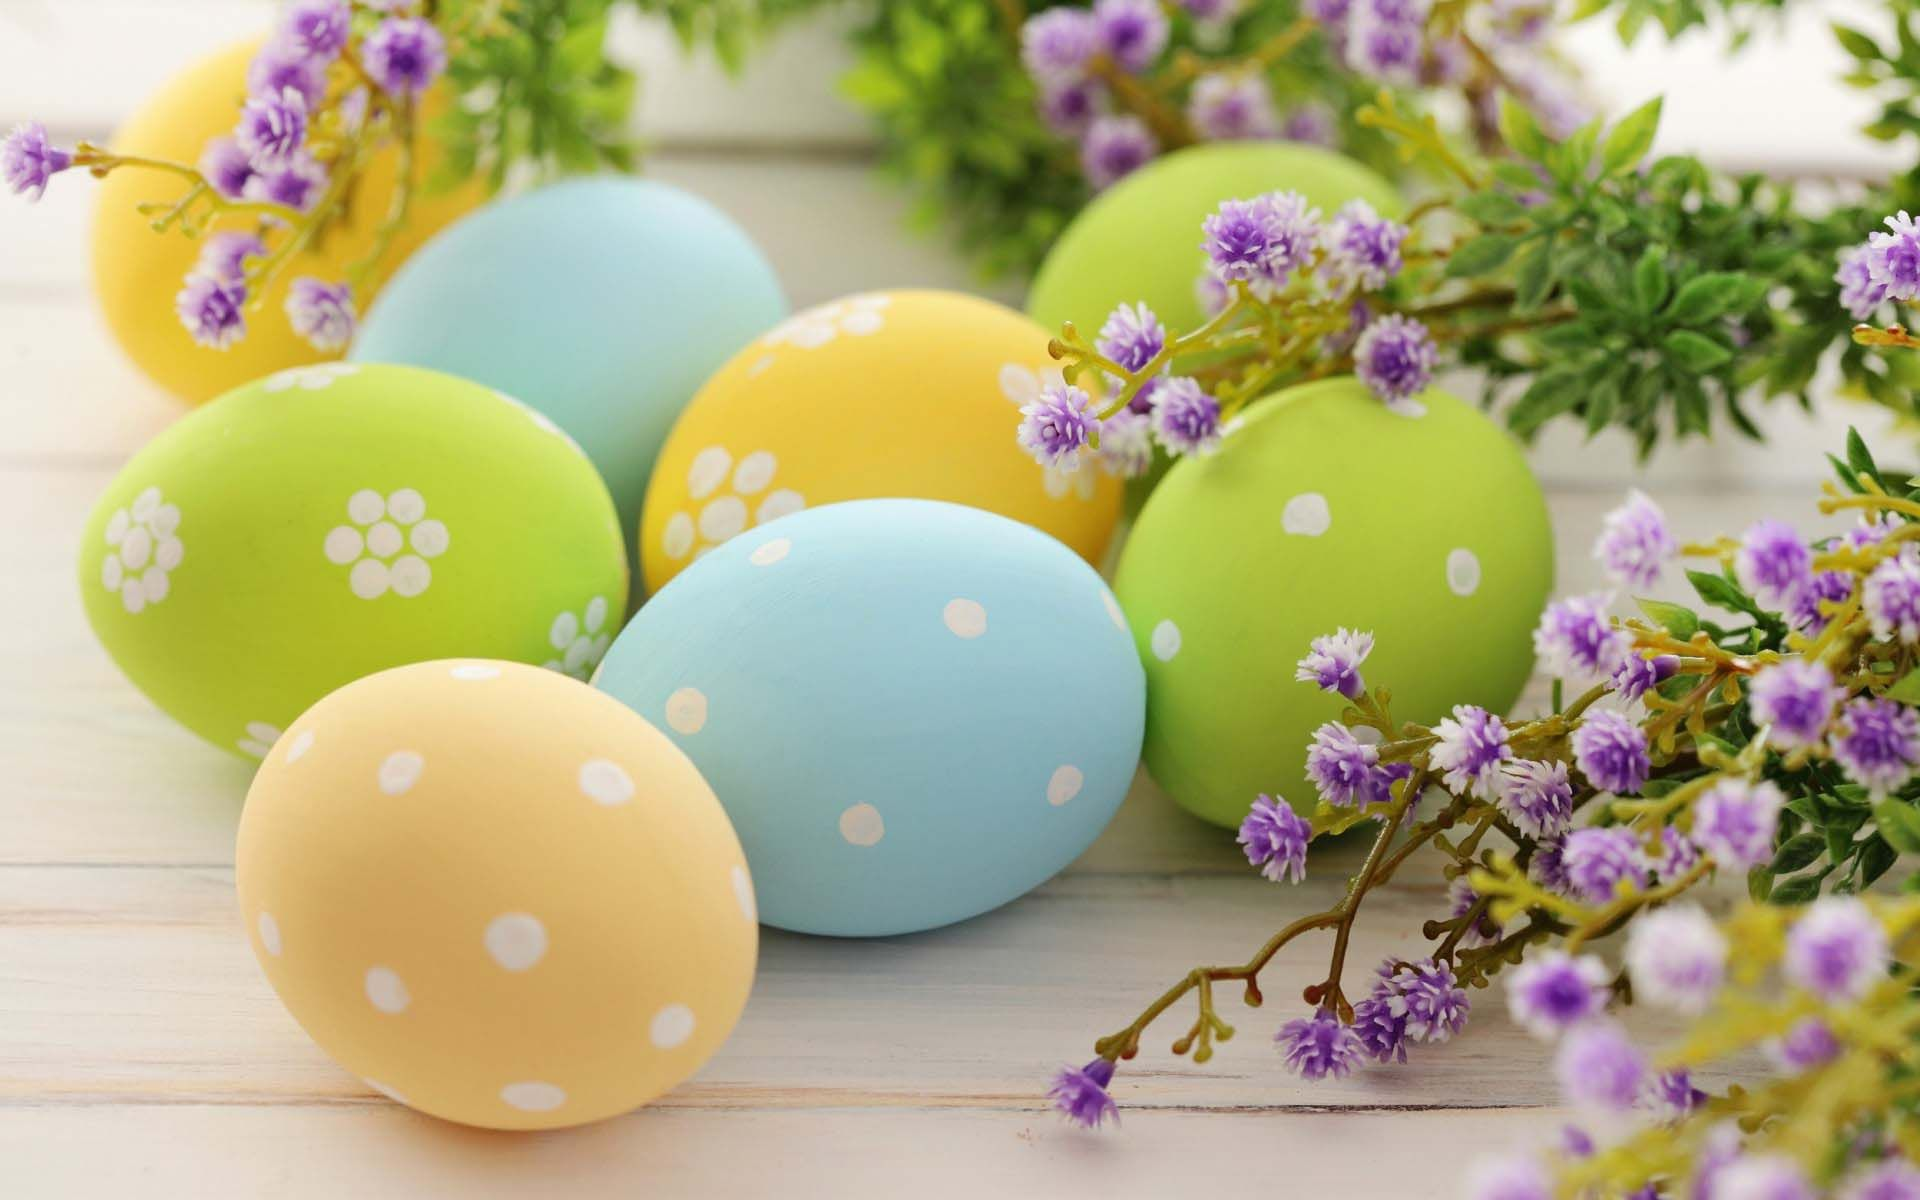 Easter Wallpaper 9   1920 X 1200 stmednet 1920x1200